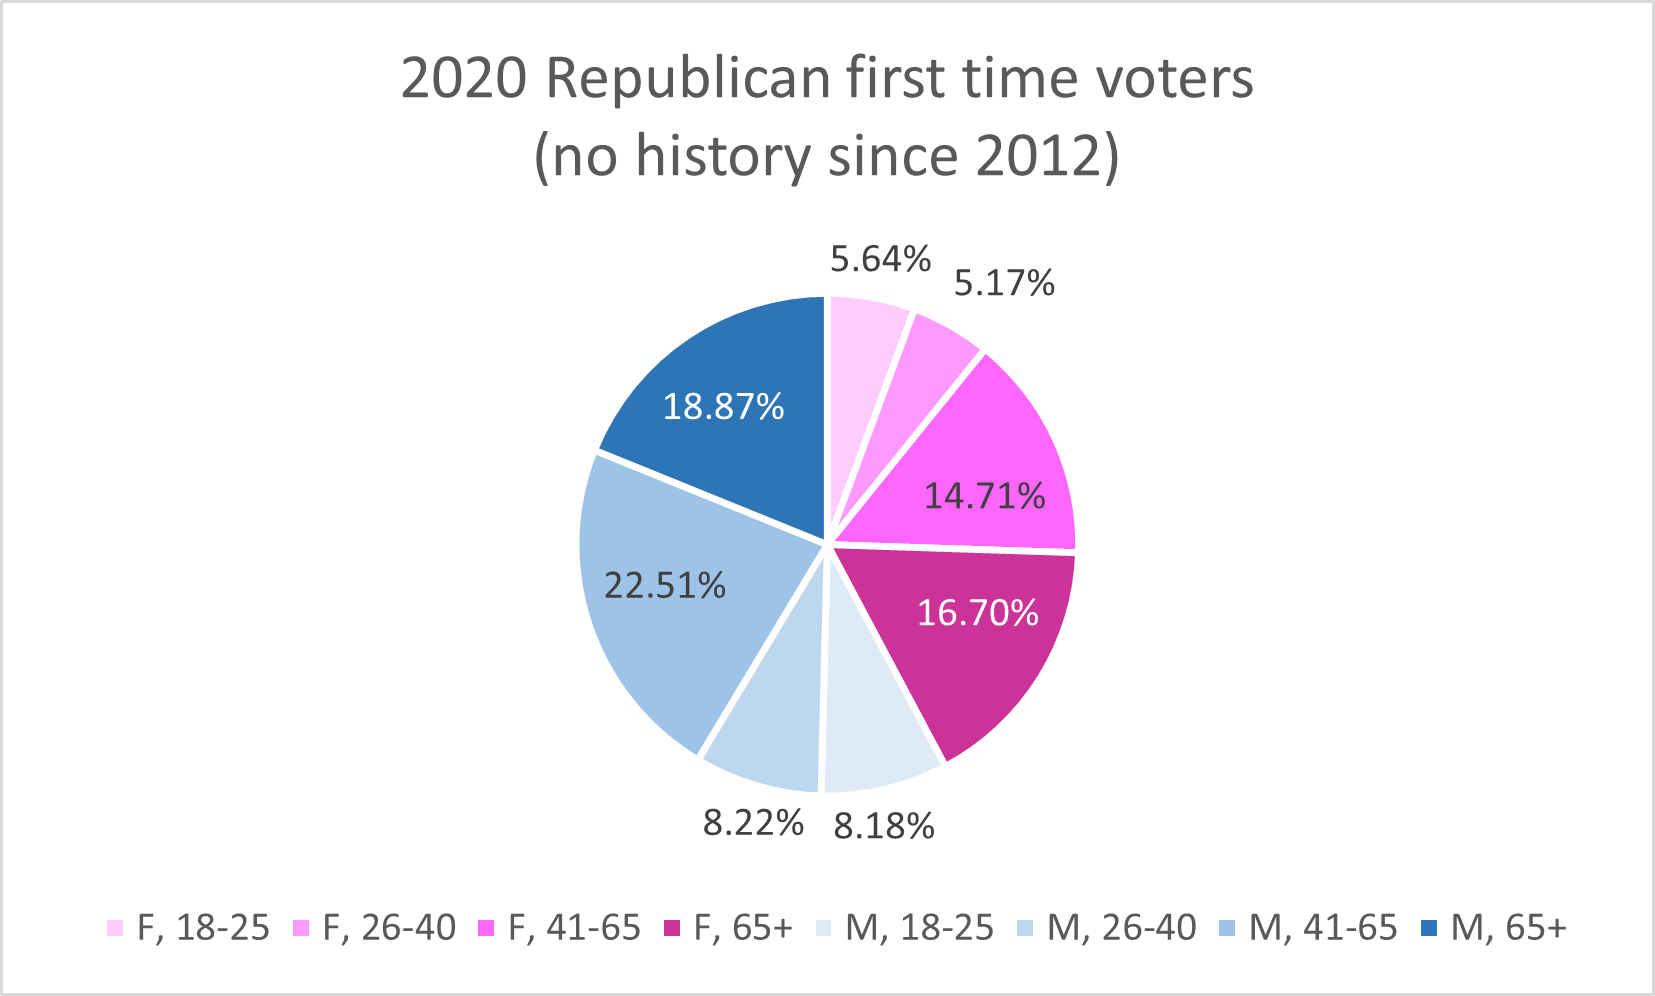 First time Republicans, age + gender